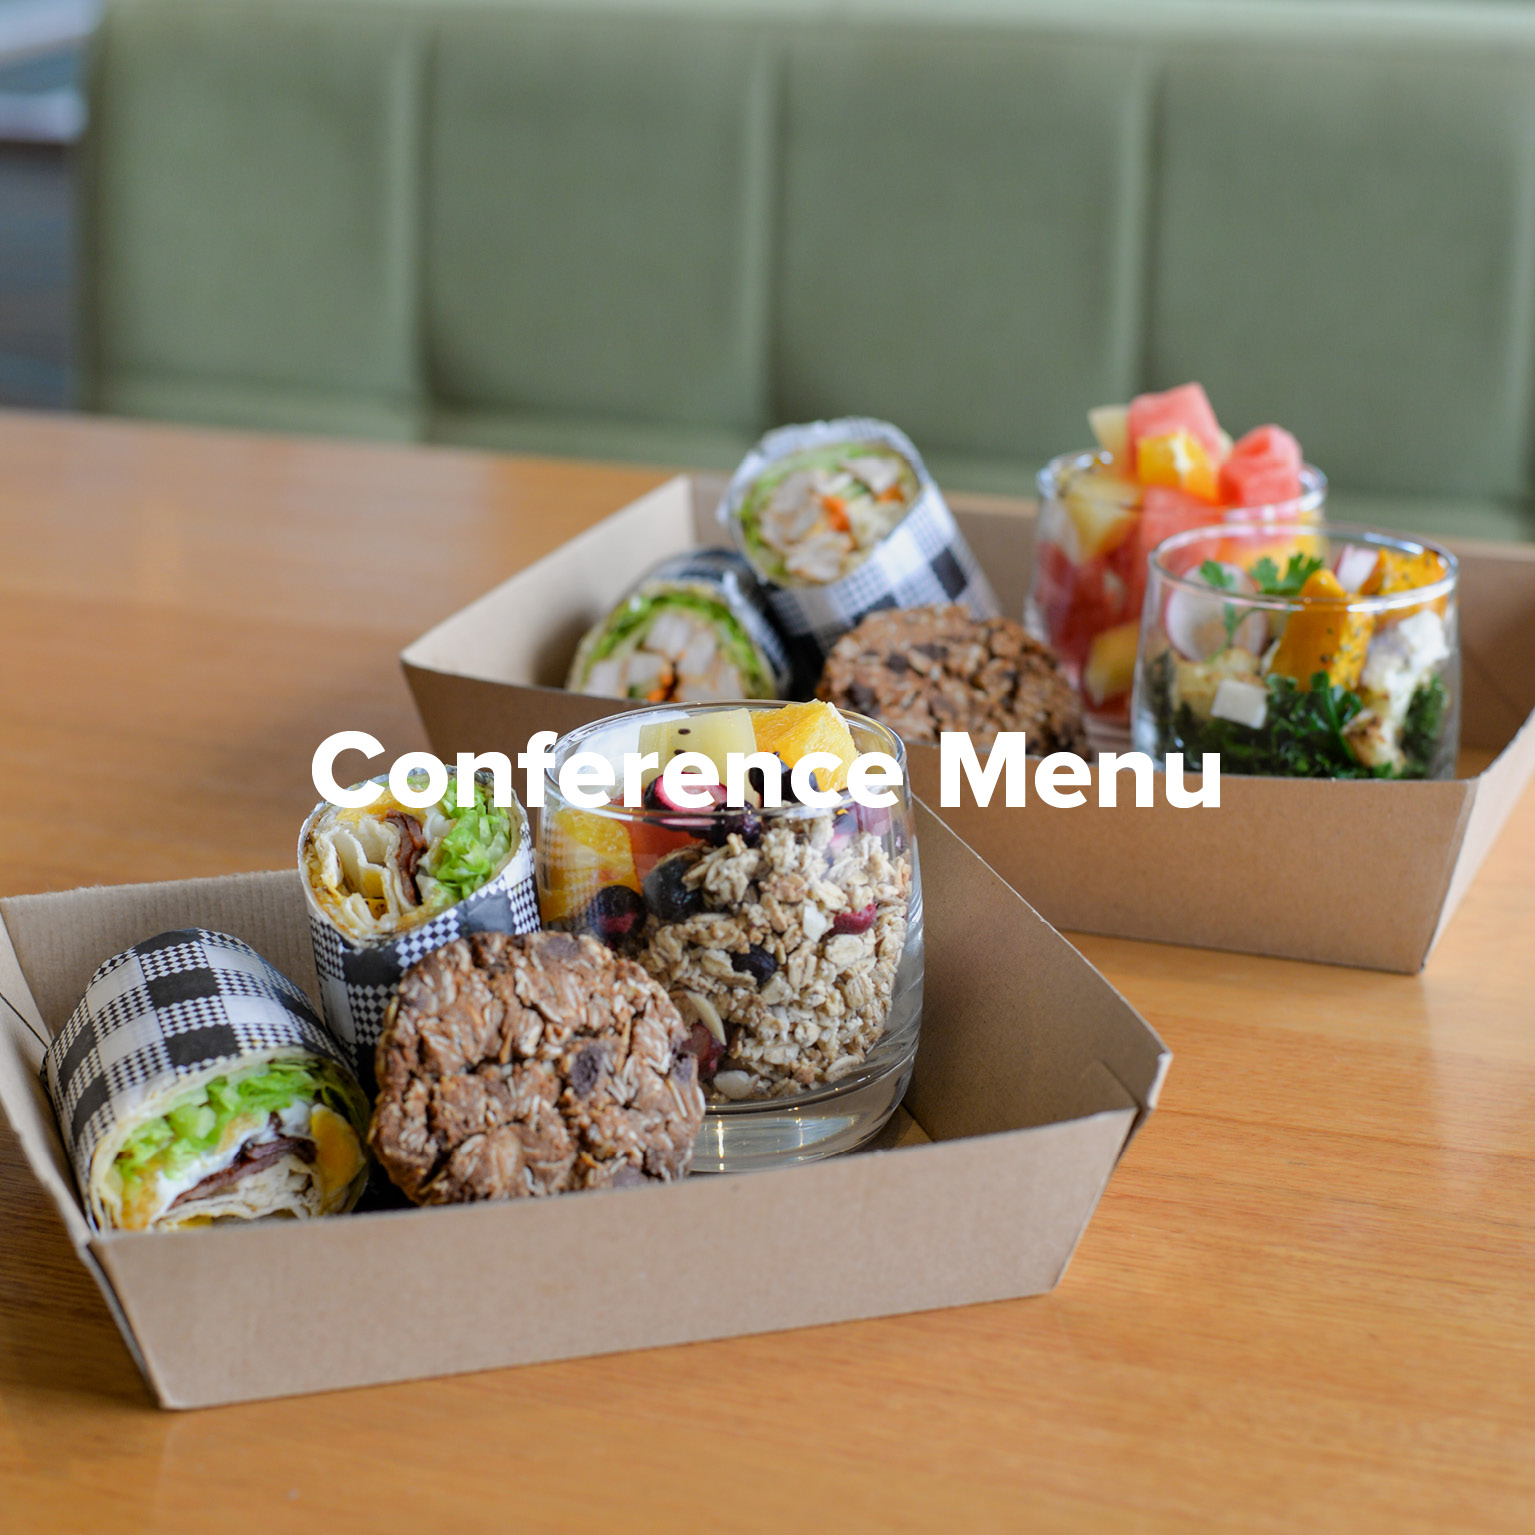 Conference Menu at Rowers on Cooks River